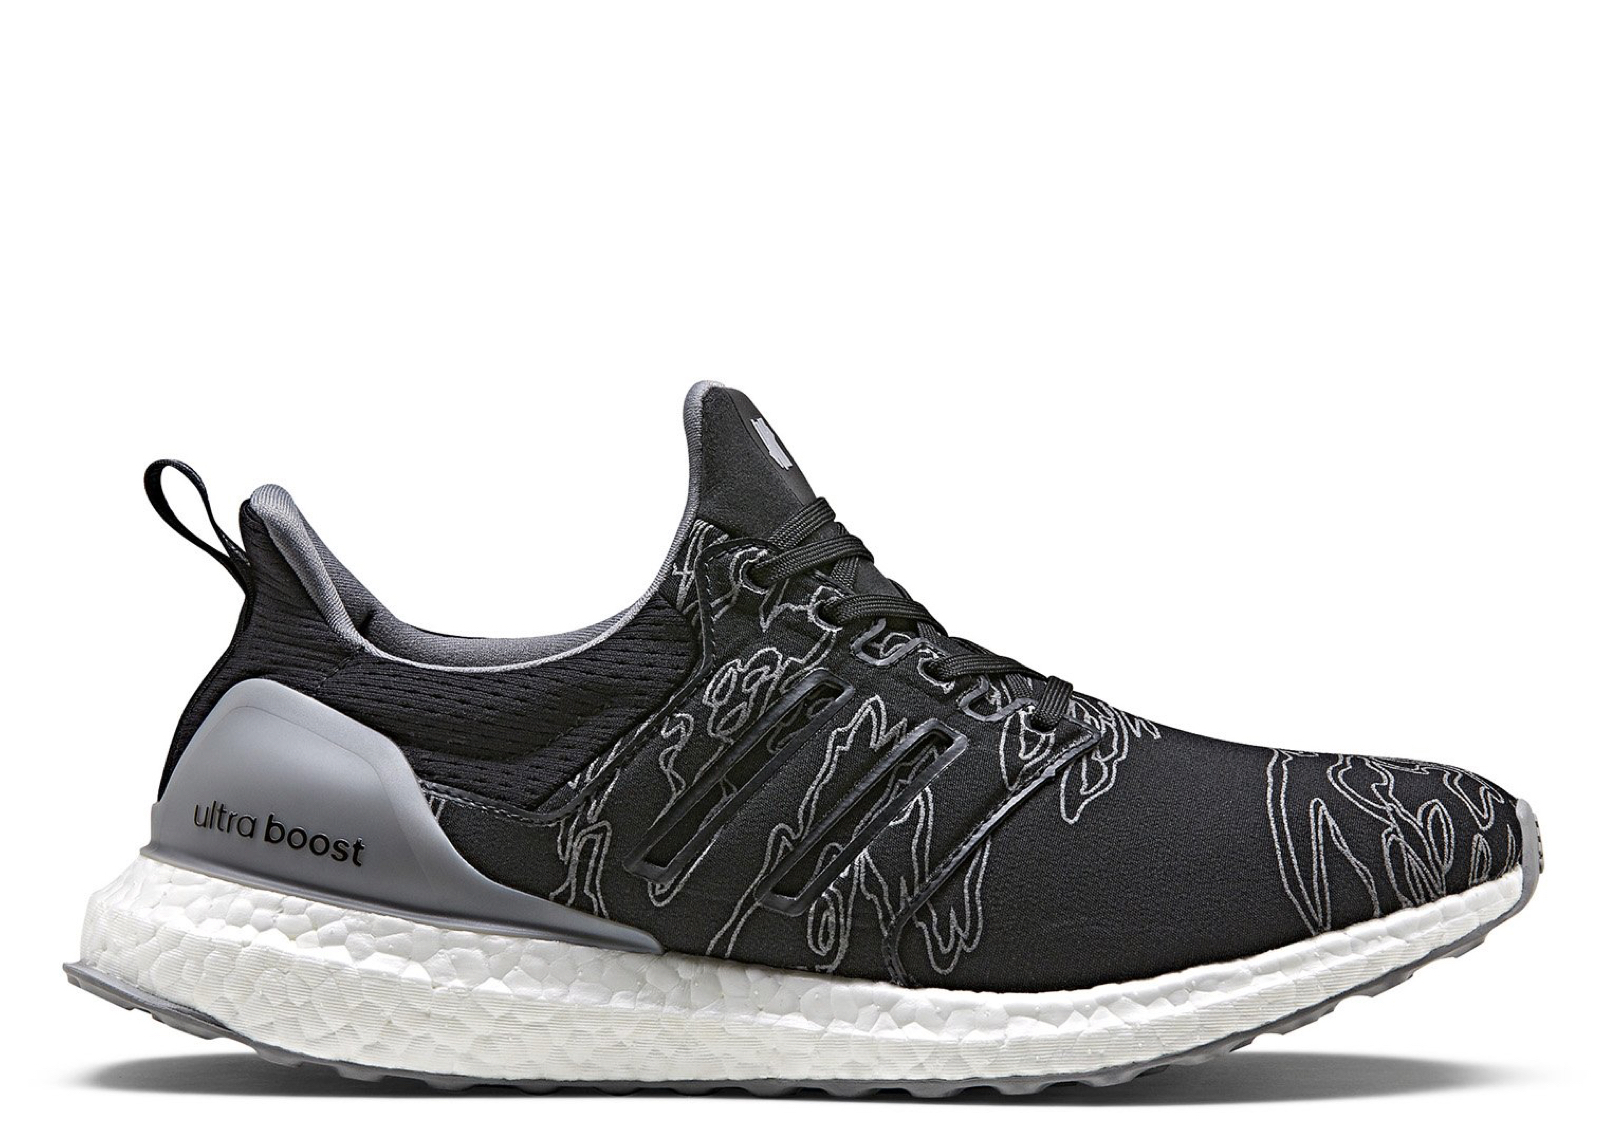 aca0a5b9c Ultra Boost Undefeated Performance Running Black